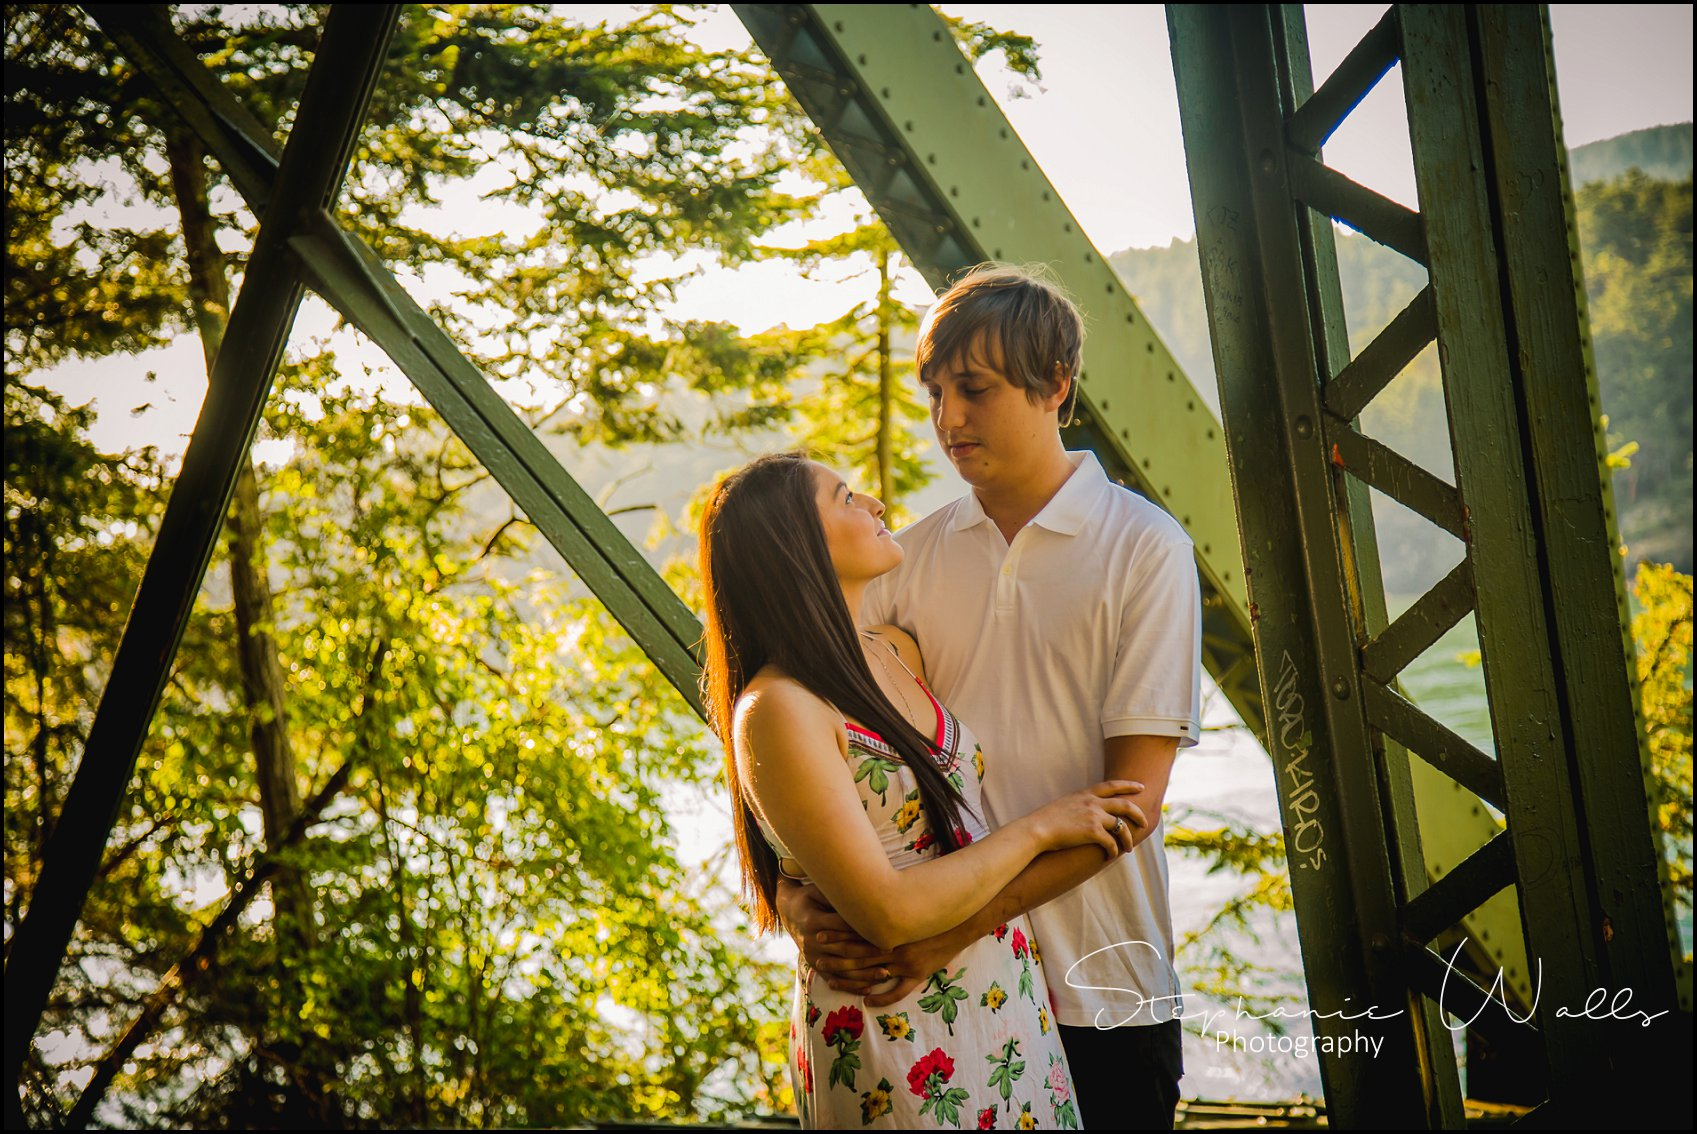 Nataly Marty003 IN A GALAXY FAR FAR AWAY | NATALY & MARTY | DECEPTION PASS ENGAGEMENT SESSION